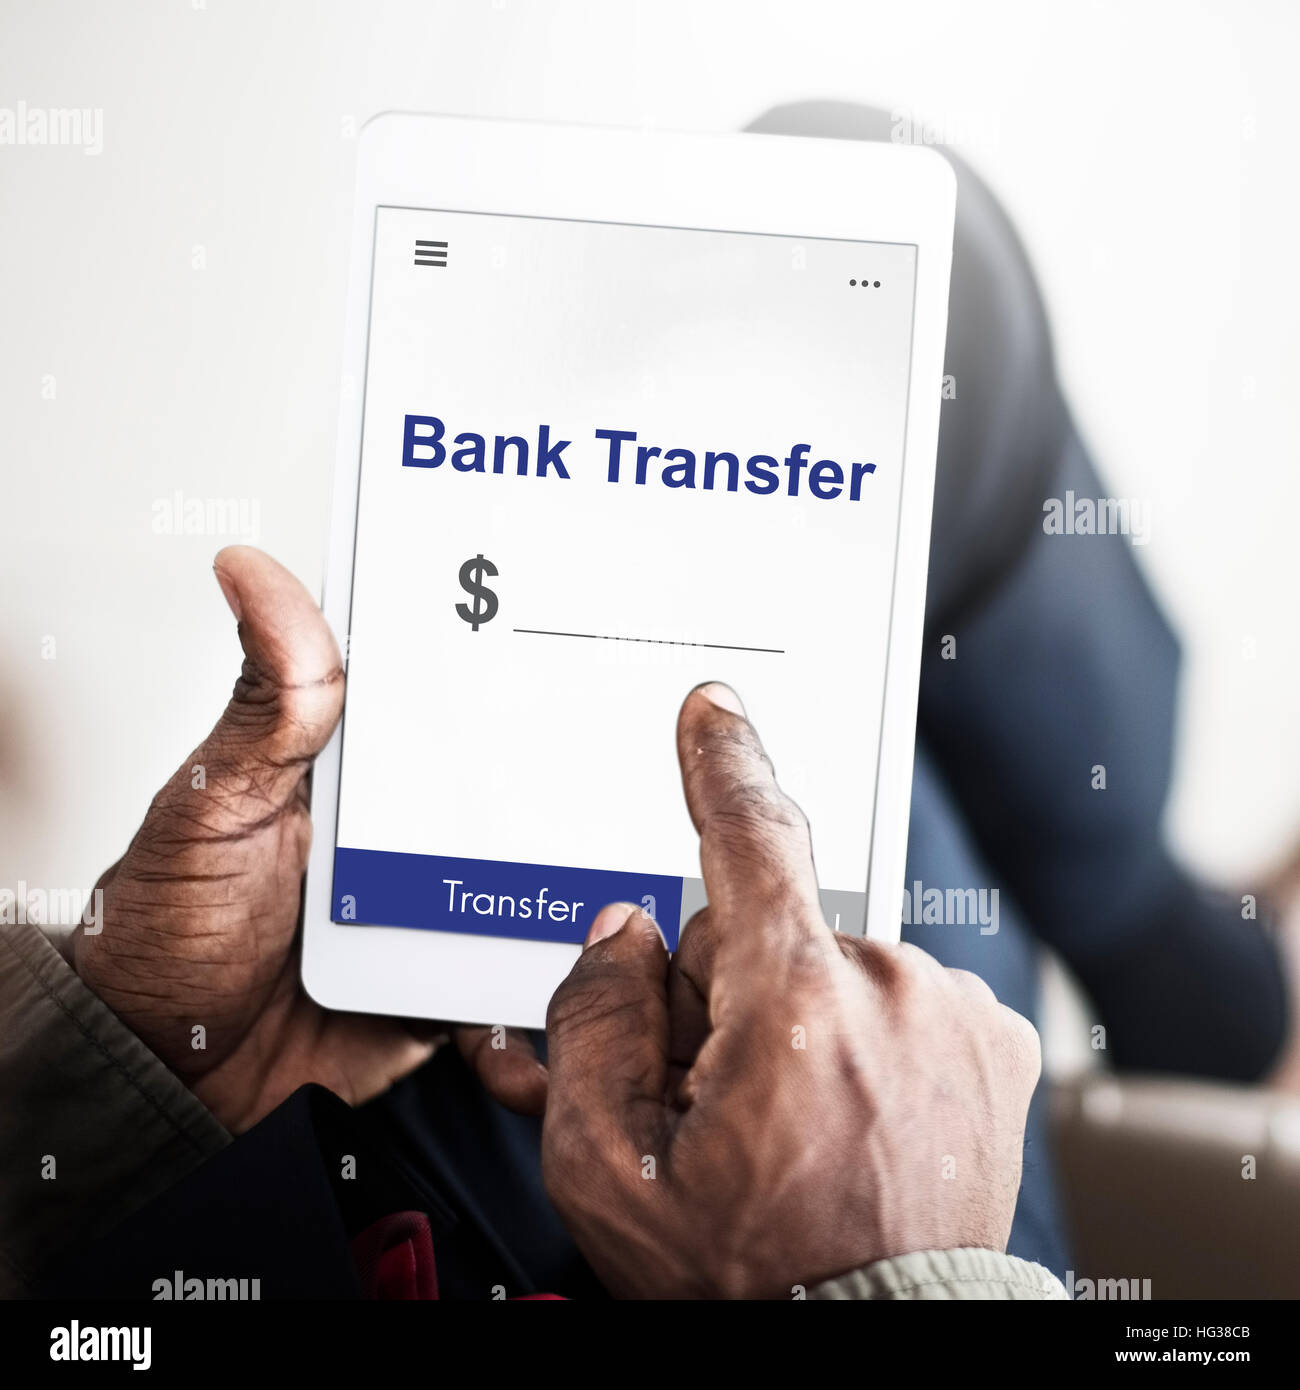 Money Transfer Stock Photos & Money Transfer Stock Images - Page 2 ...